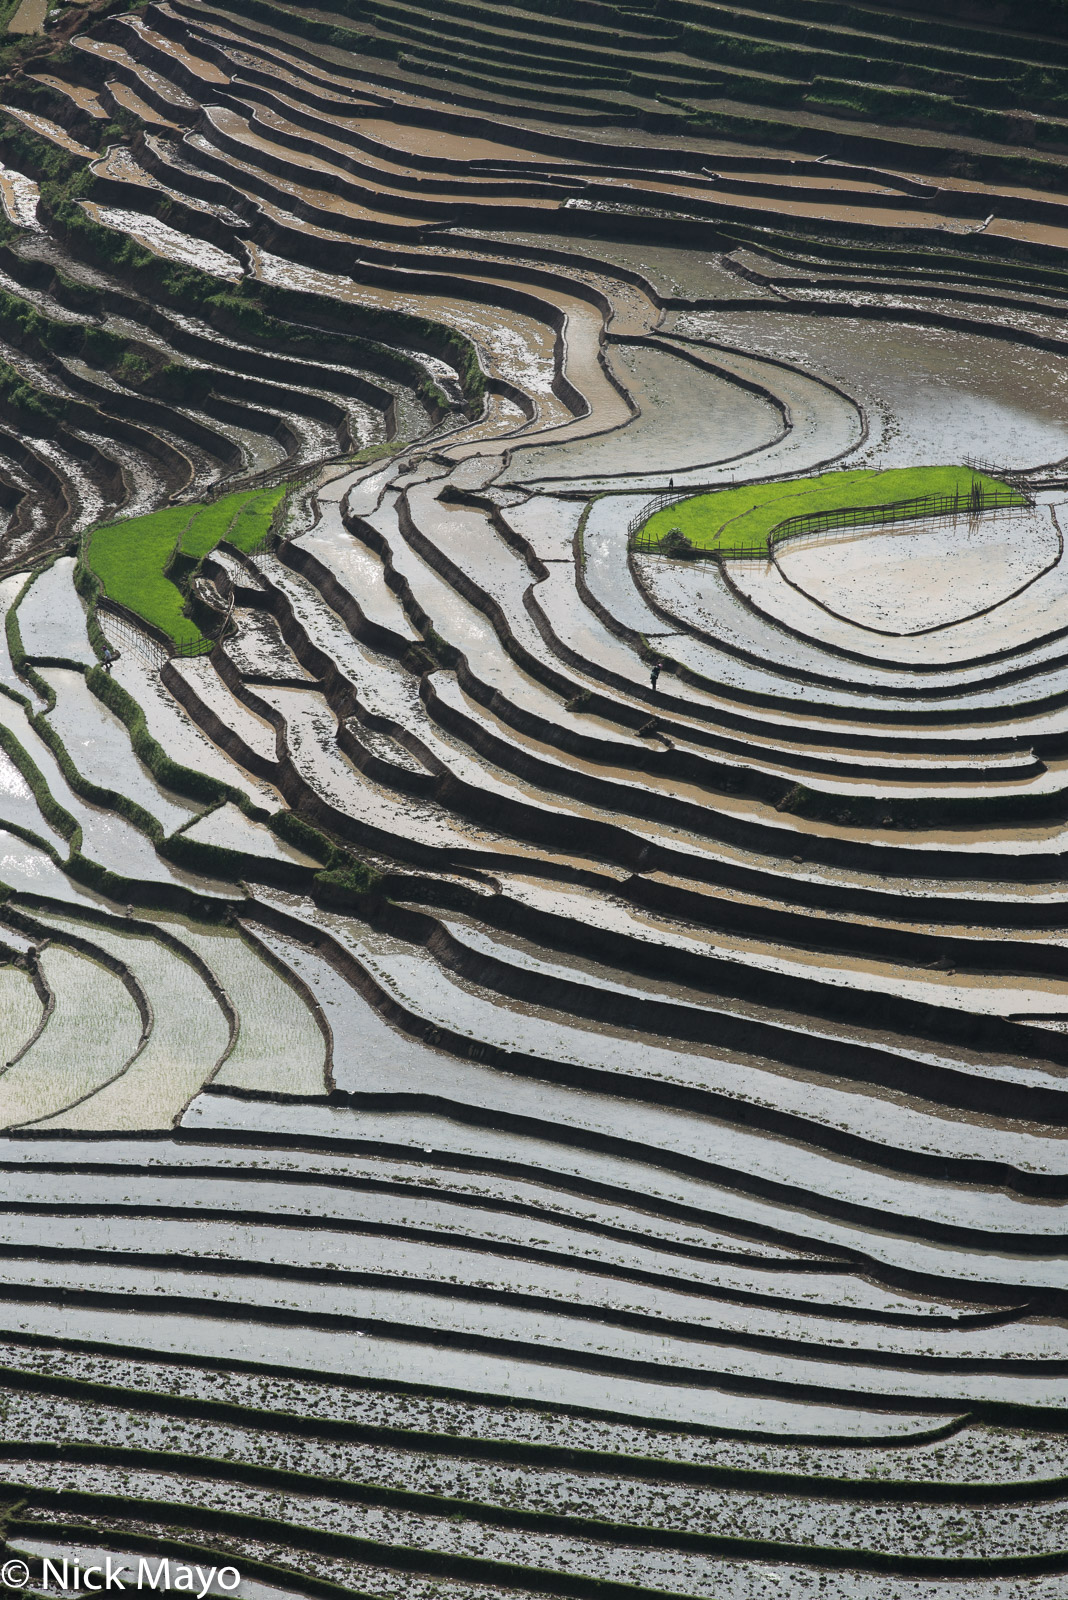 Seed beds on terraced paddy fields near Muong Hum.